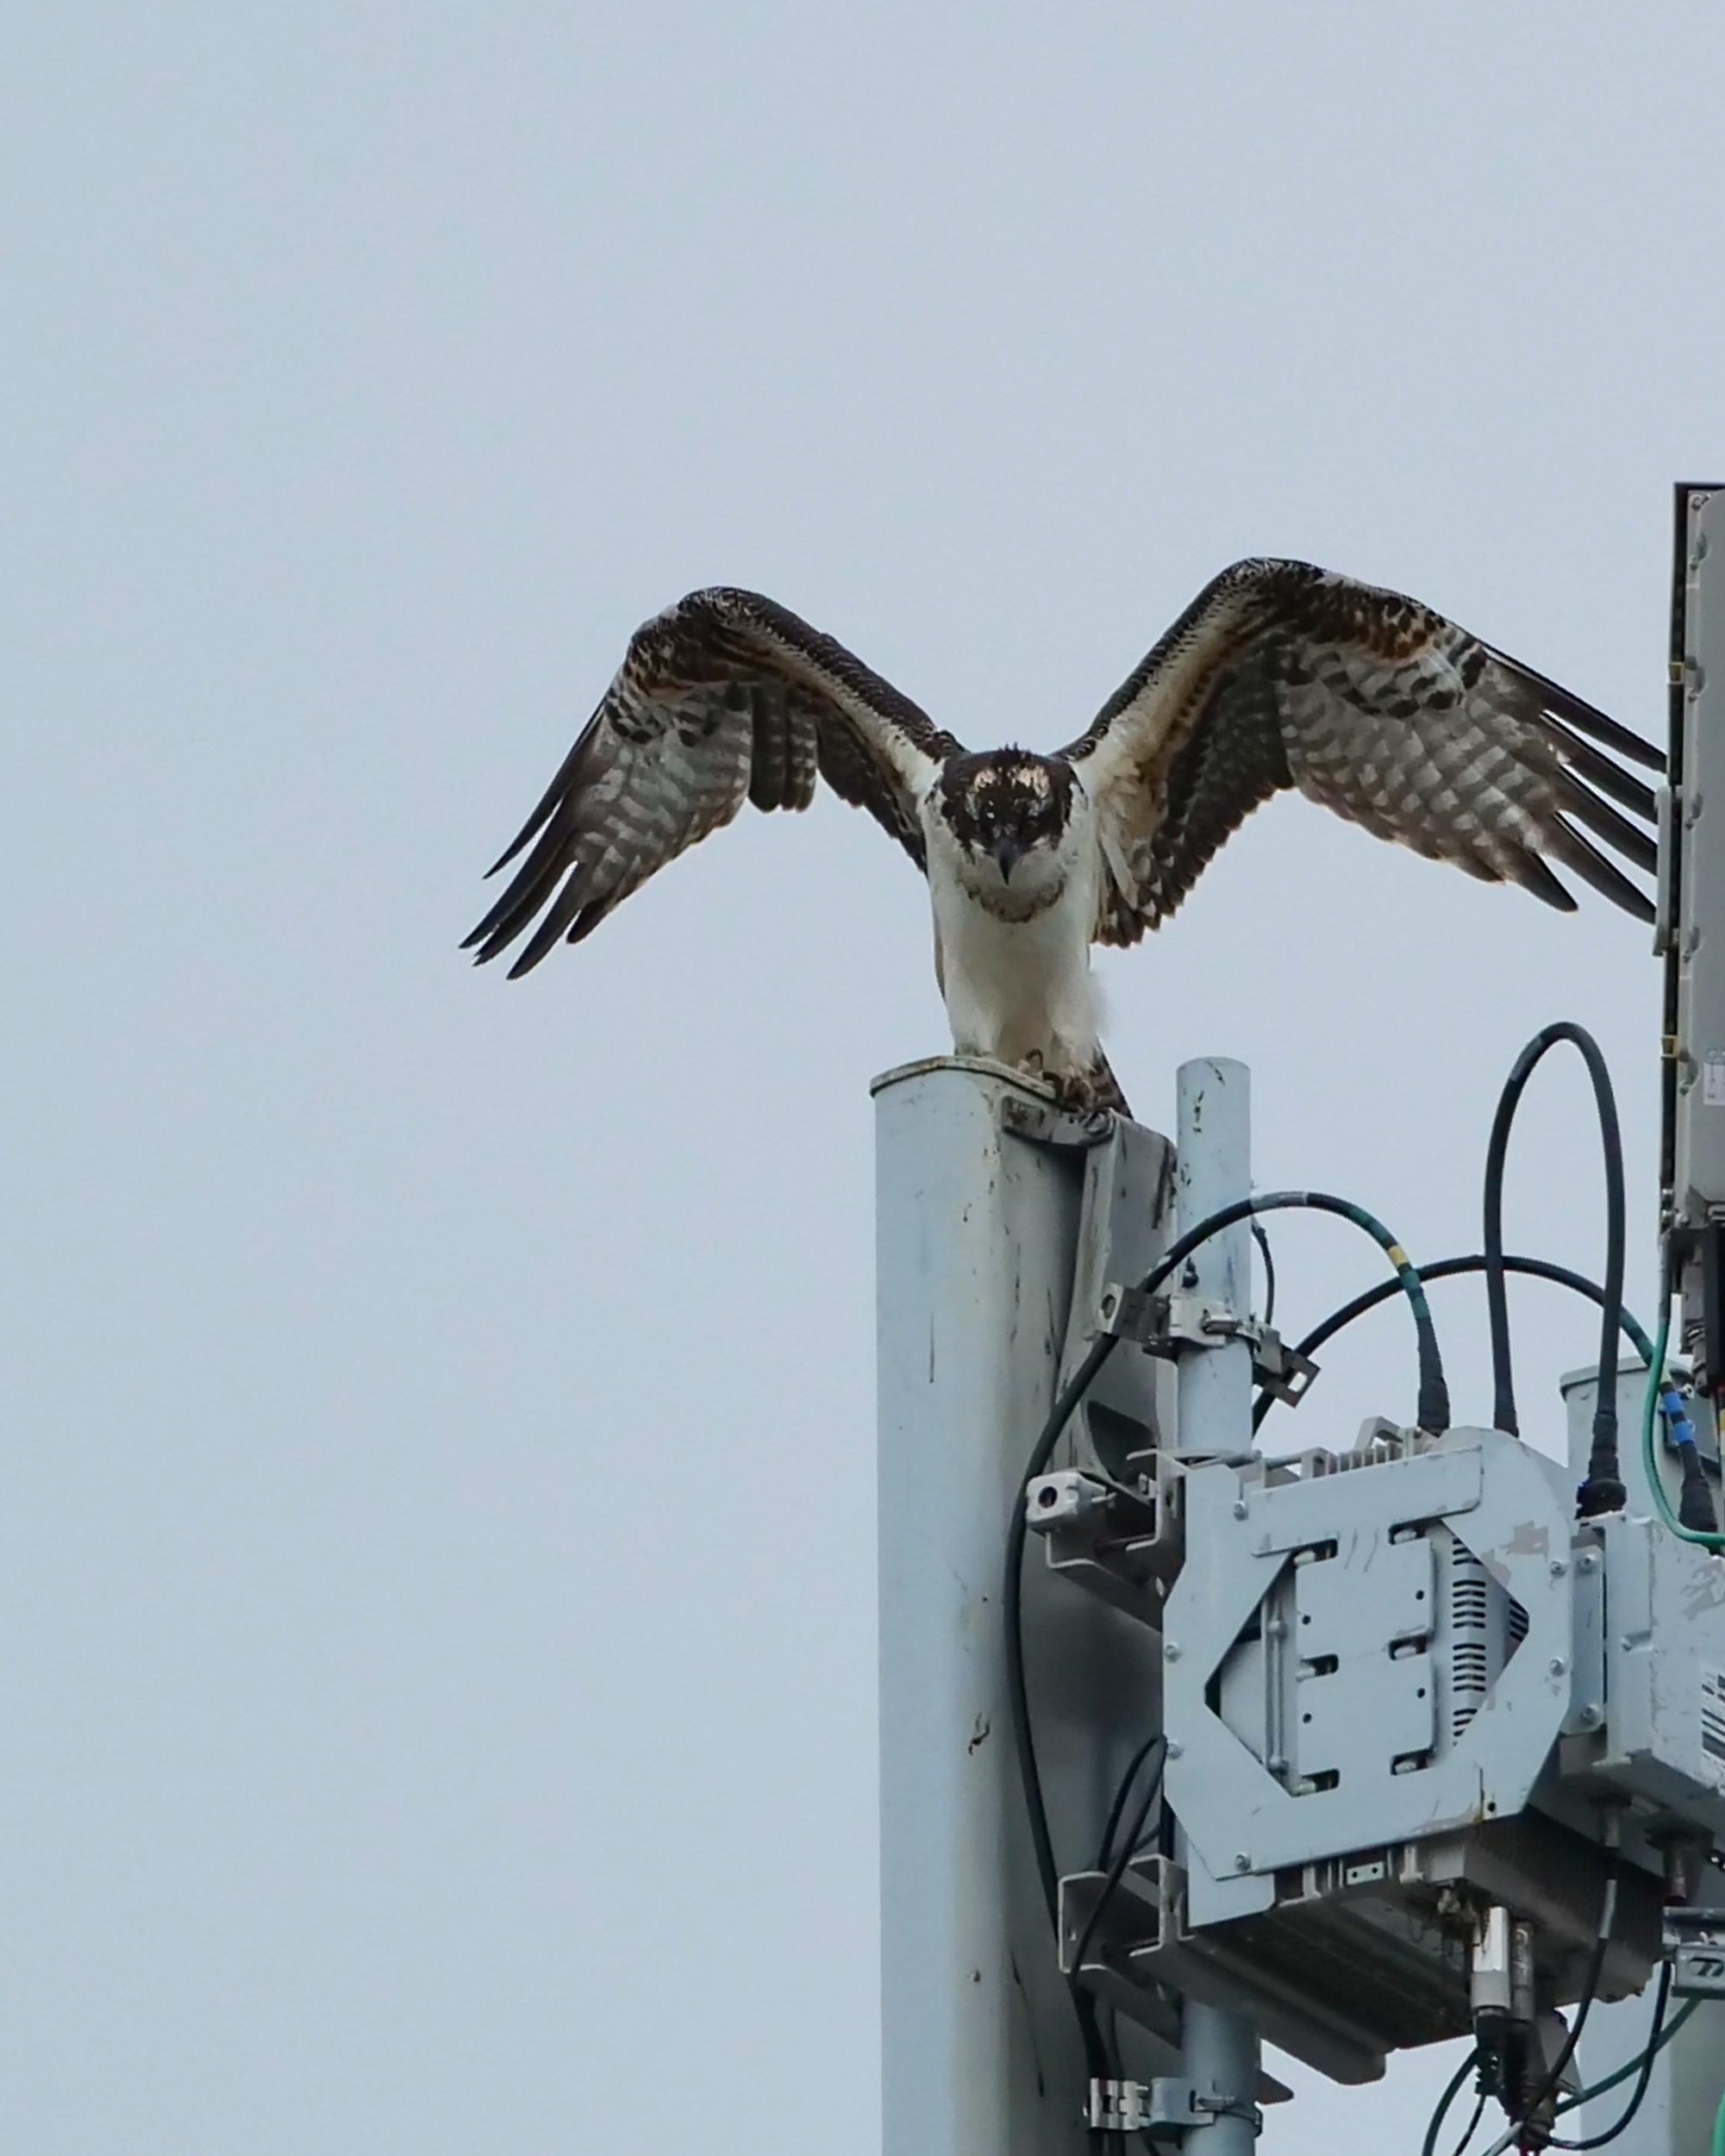 20180907-osprey-imm-waiting-for-food-delivery-croton-_